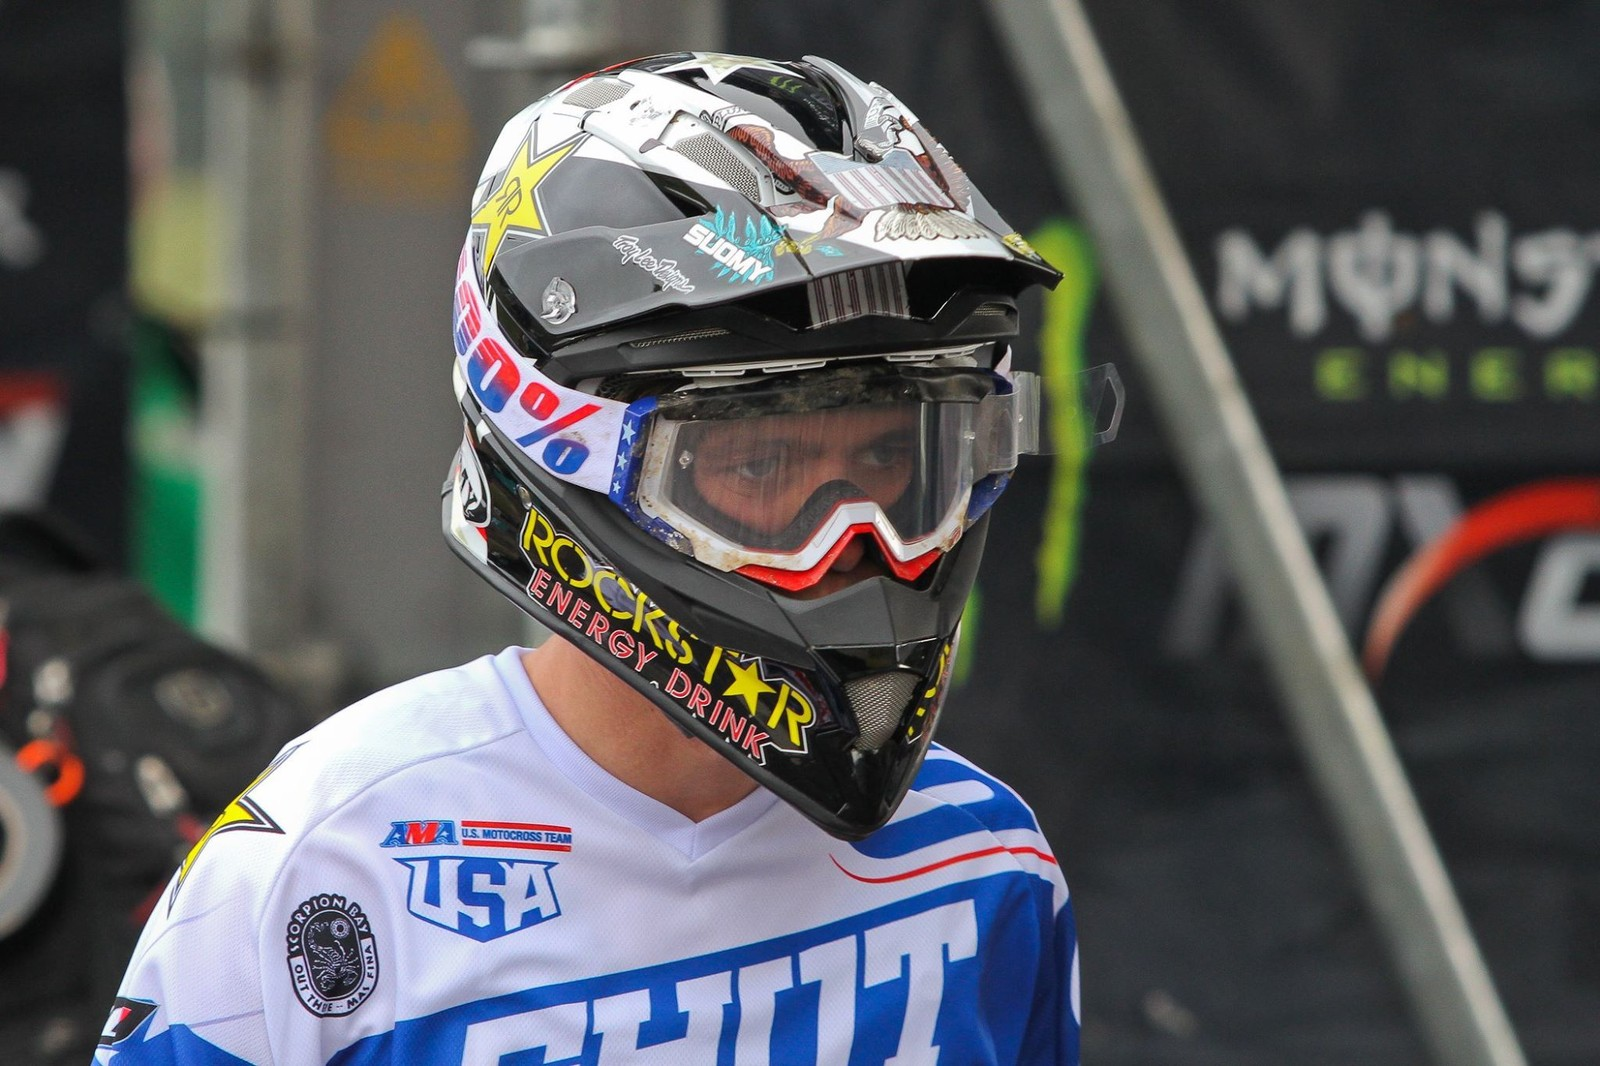 It's now been announced that Thomas Covington tore his ACL during a crash in Saturday's qualification race, making his rides on Sunday even more impressive.